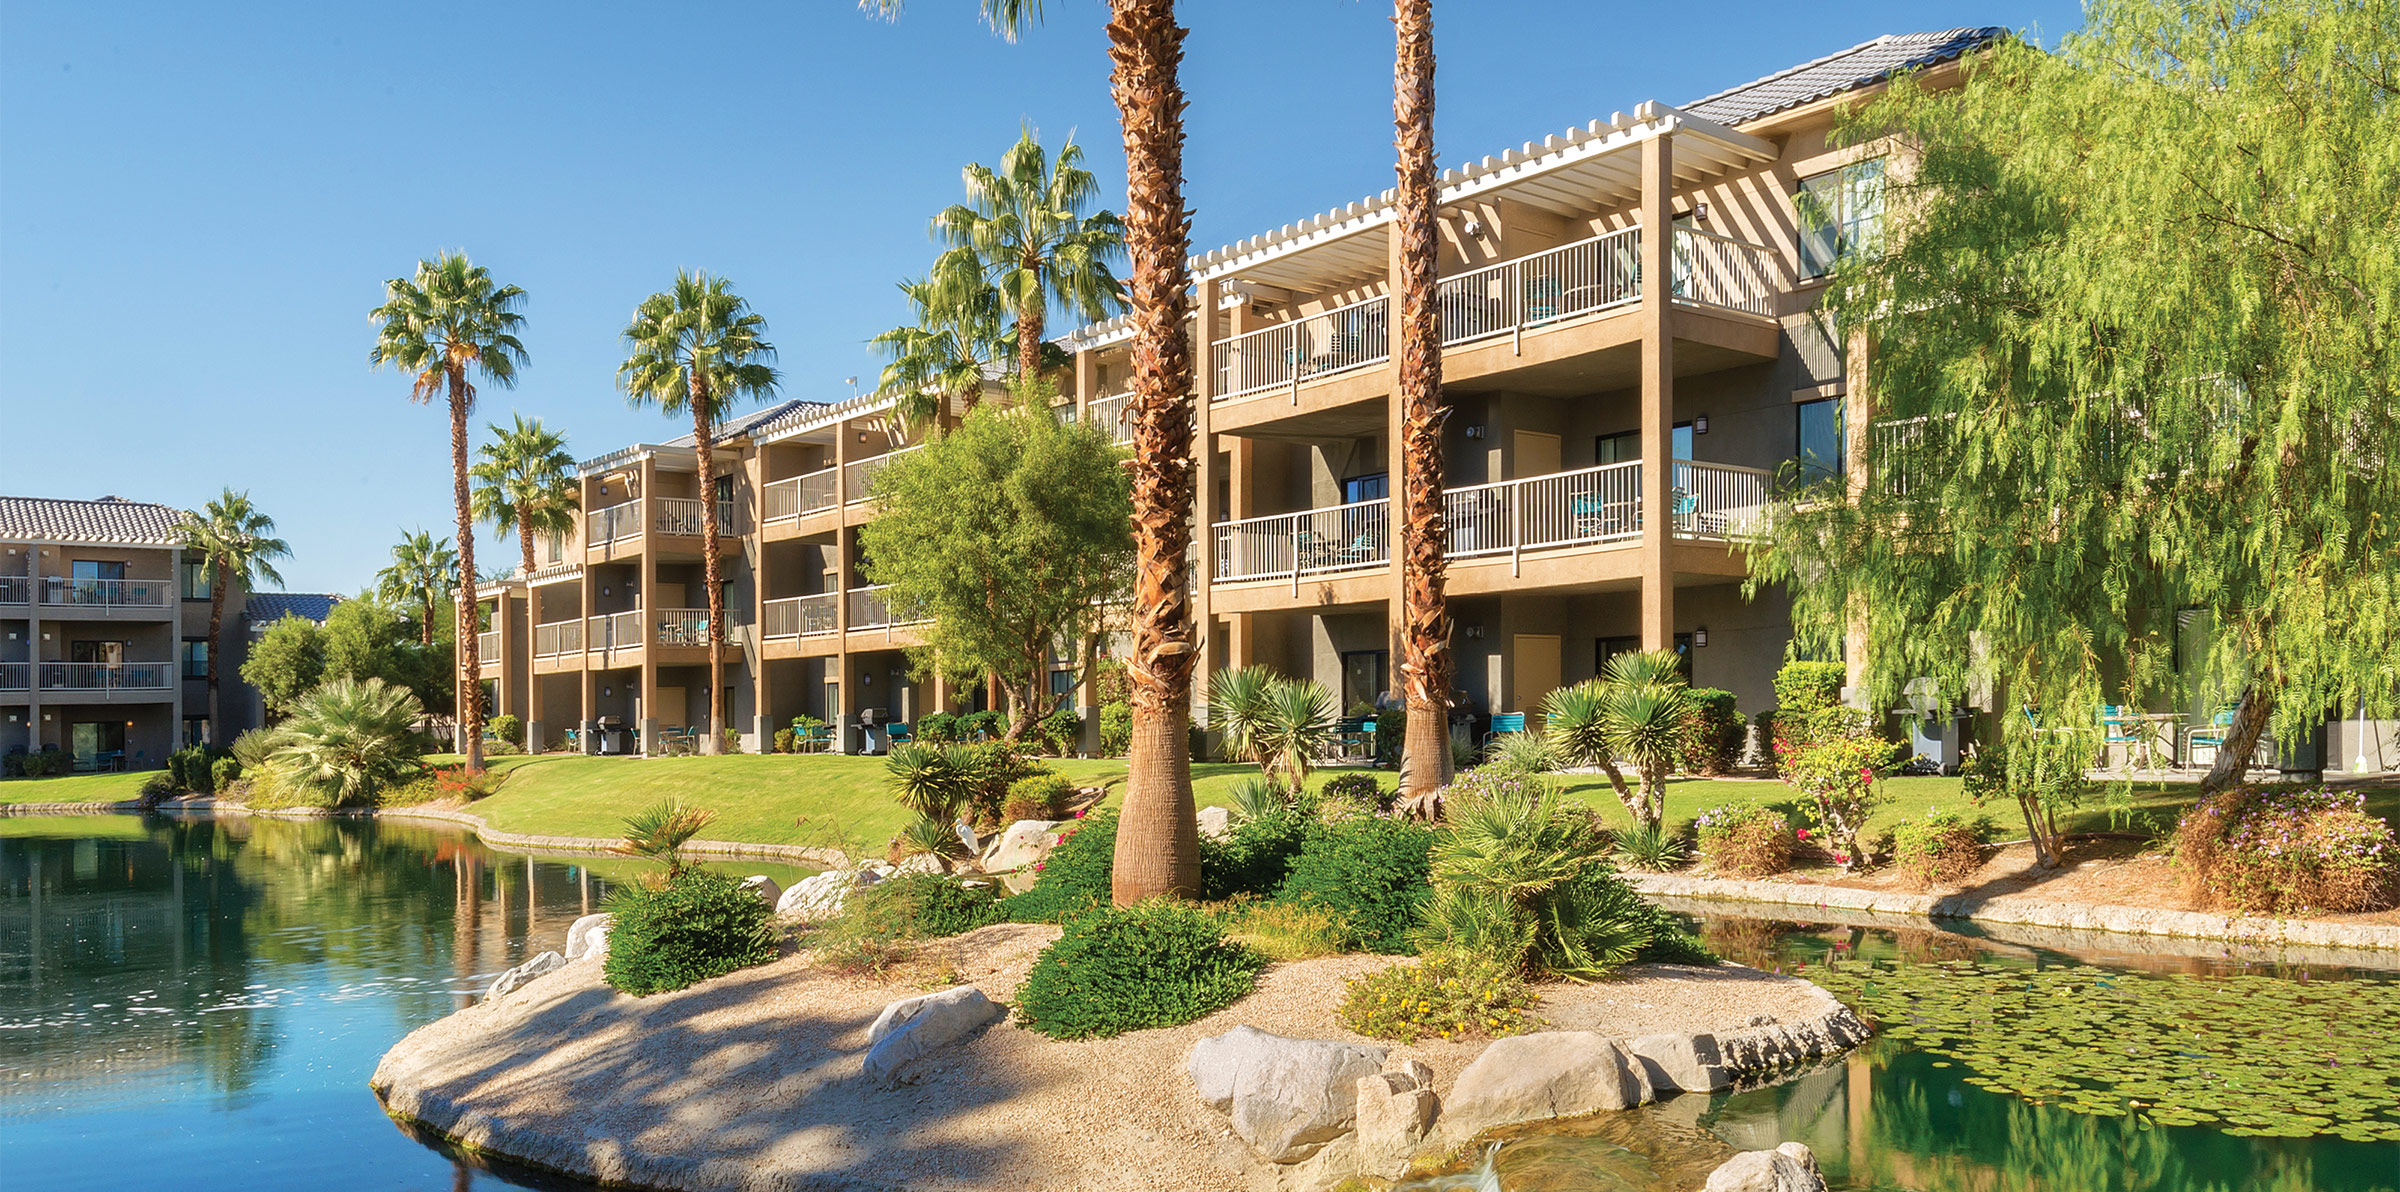 Apartment 1 Bedroom 1 Bath In Indio  CA   Palm Springs  5 miles from COACHELLA photo 18634807